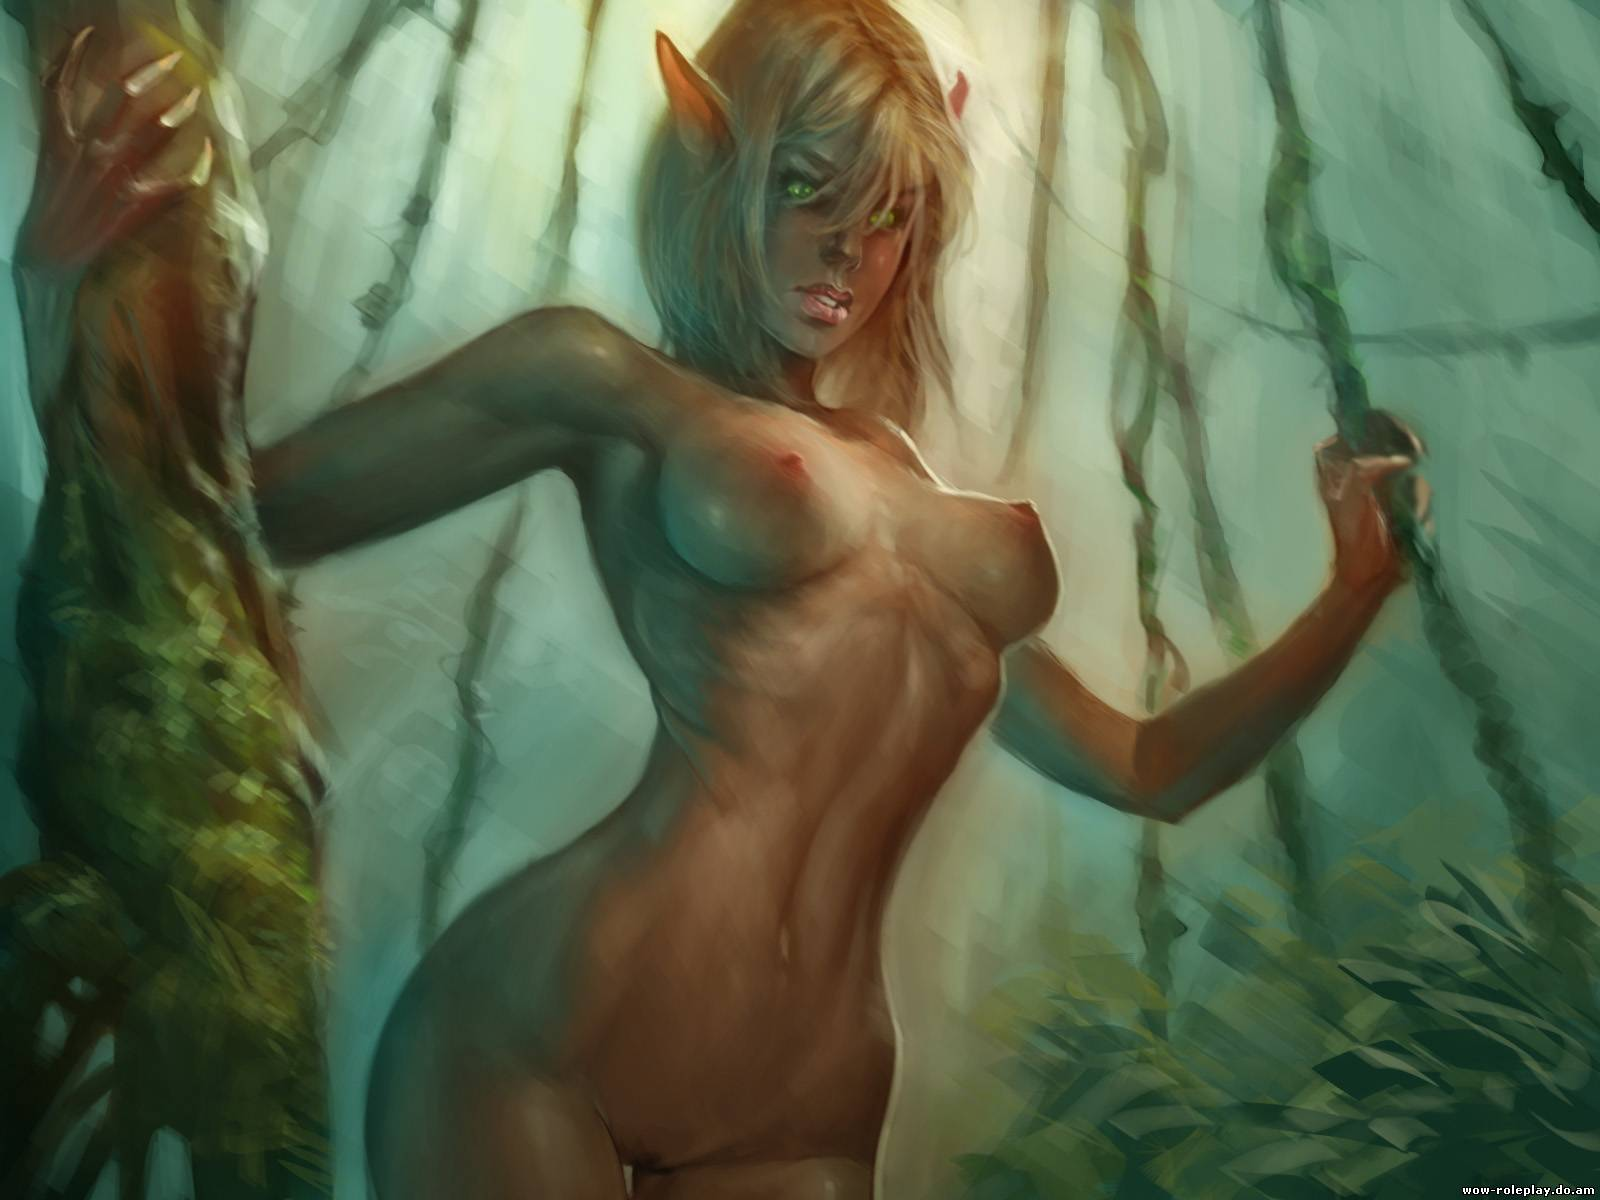 Nude art fantasy pirate hentai photo